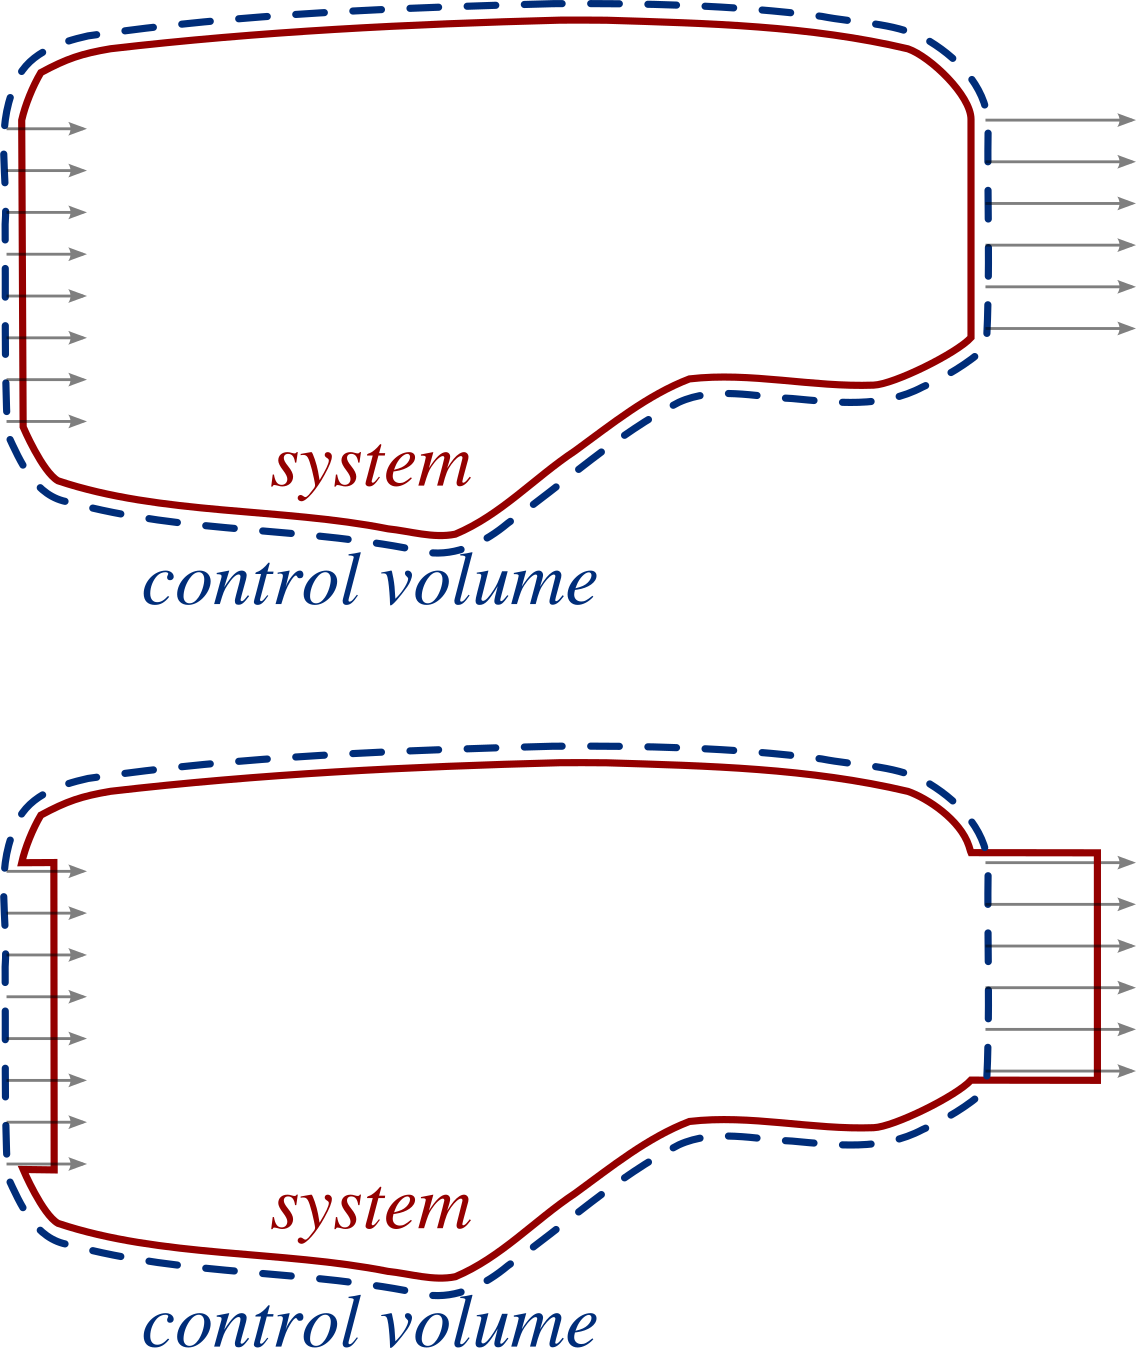 2/images/concept_control_volume_system_simple.png